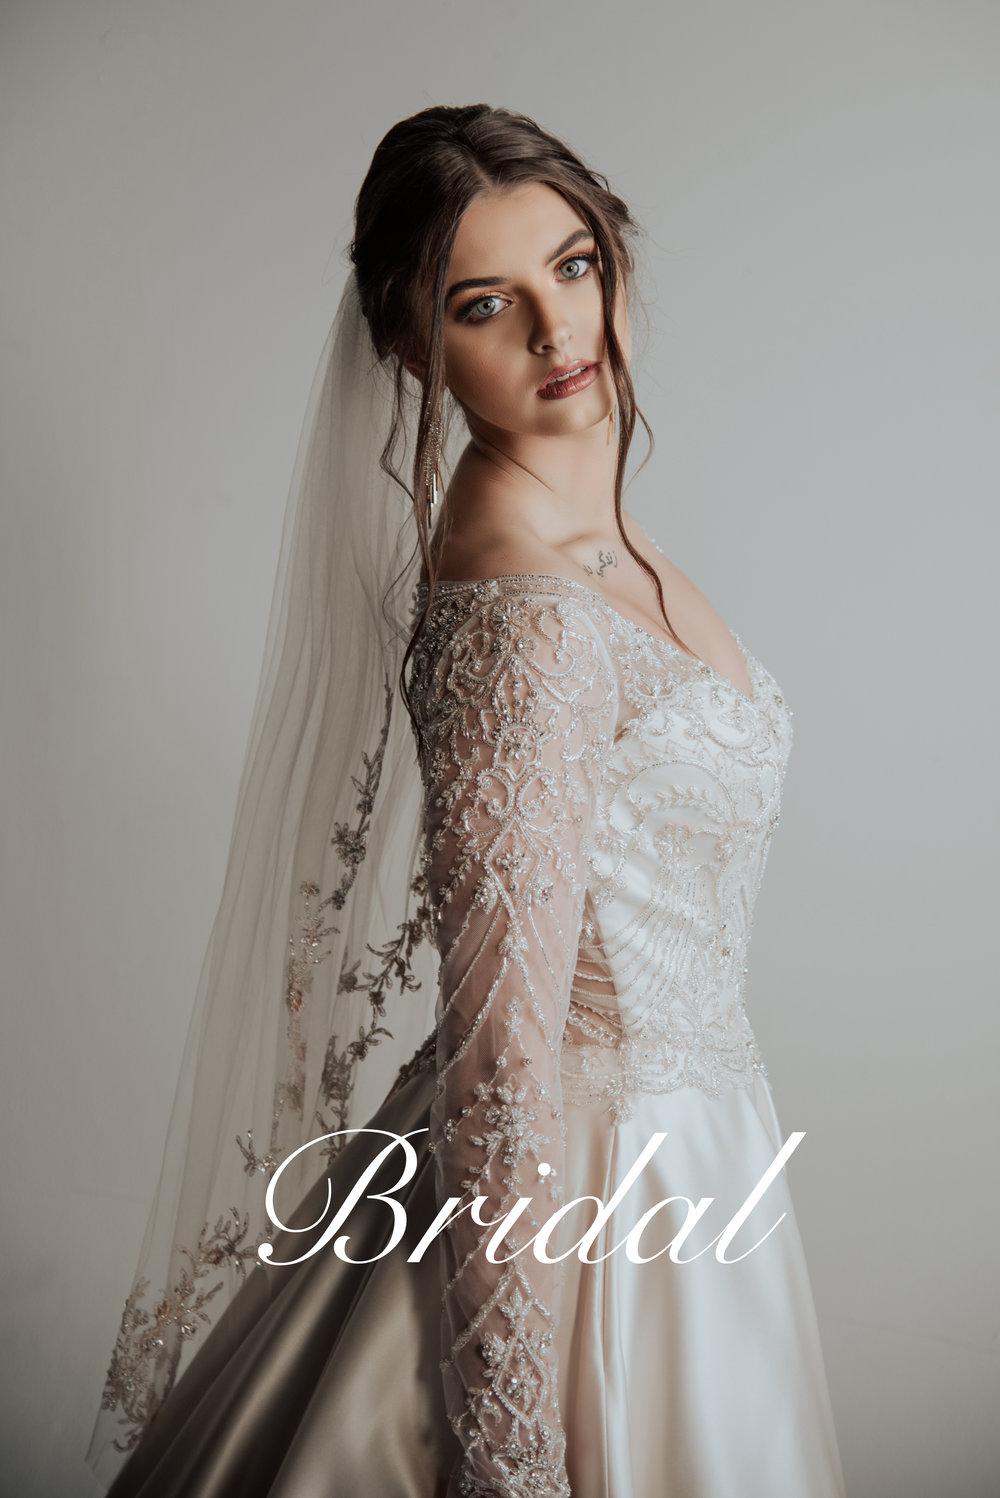 Black Tie Bridal Cover.jpg